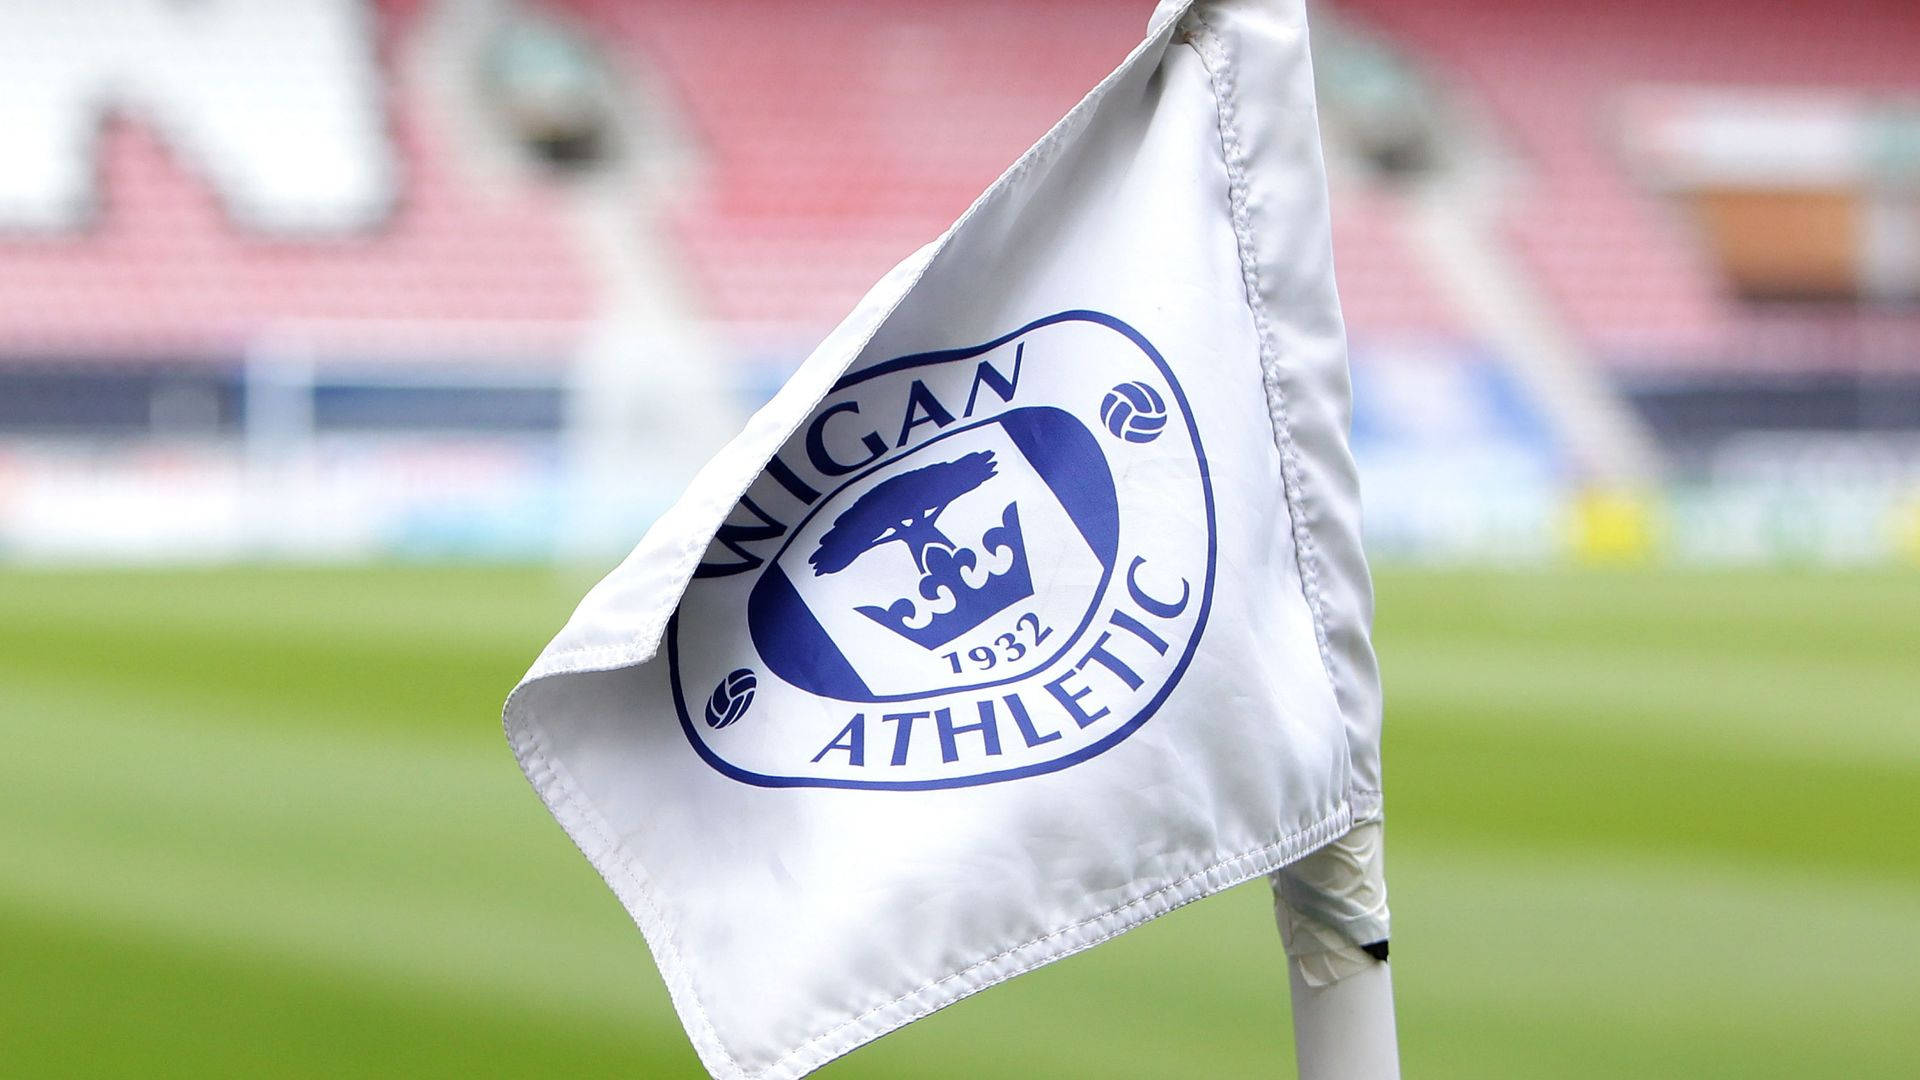 'Adverse publicity led to withdrawal of Wigan offer'